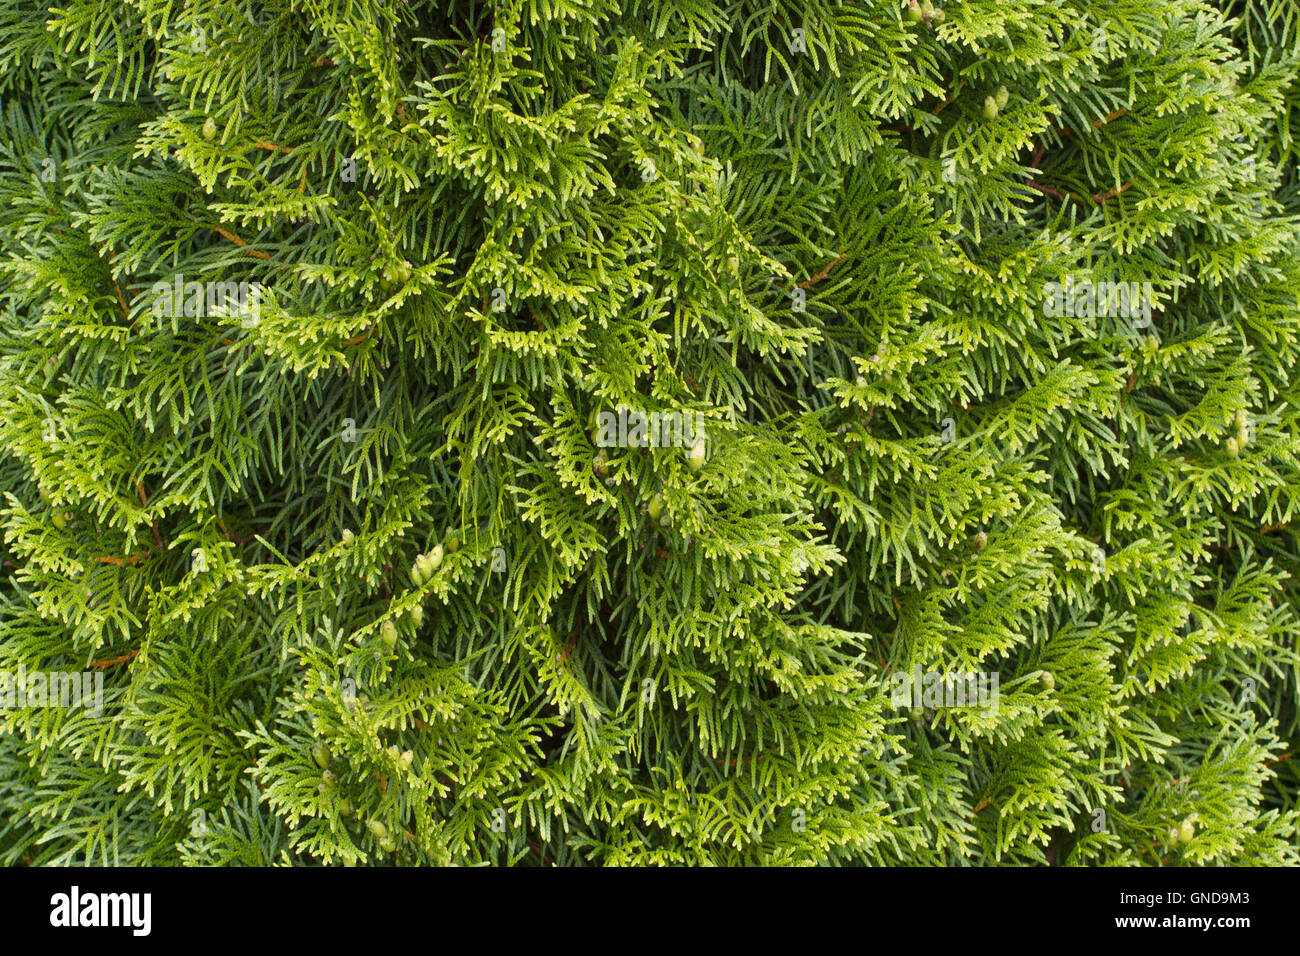 conifer hedges stockfotos conifer hedges bilder alamy. Black Bedroom Furniture Sets. Home Design Ideas